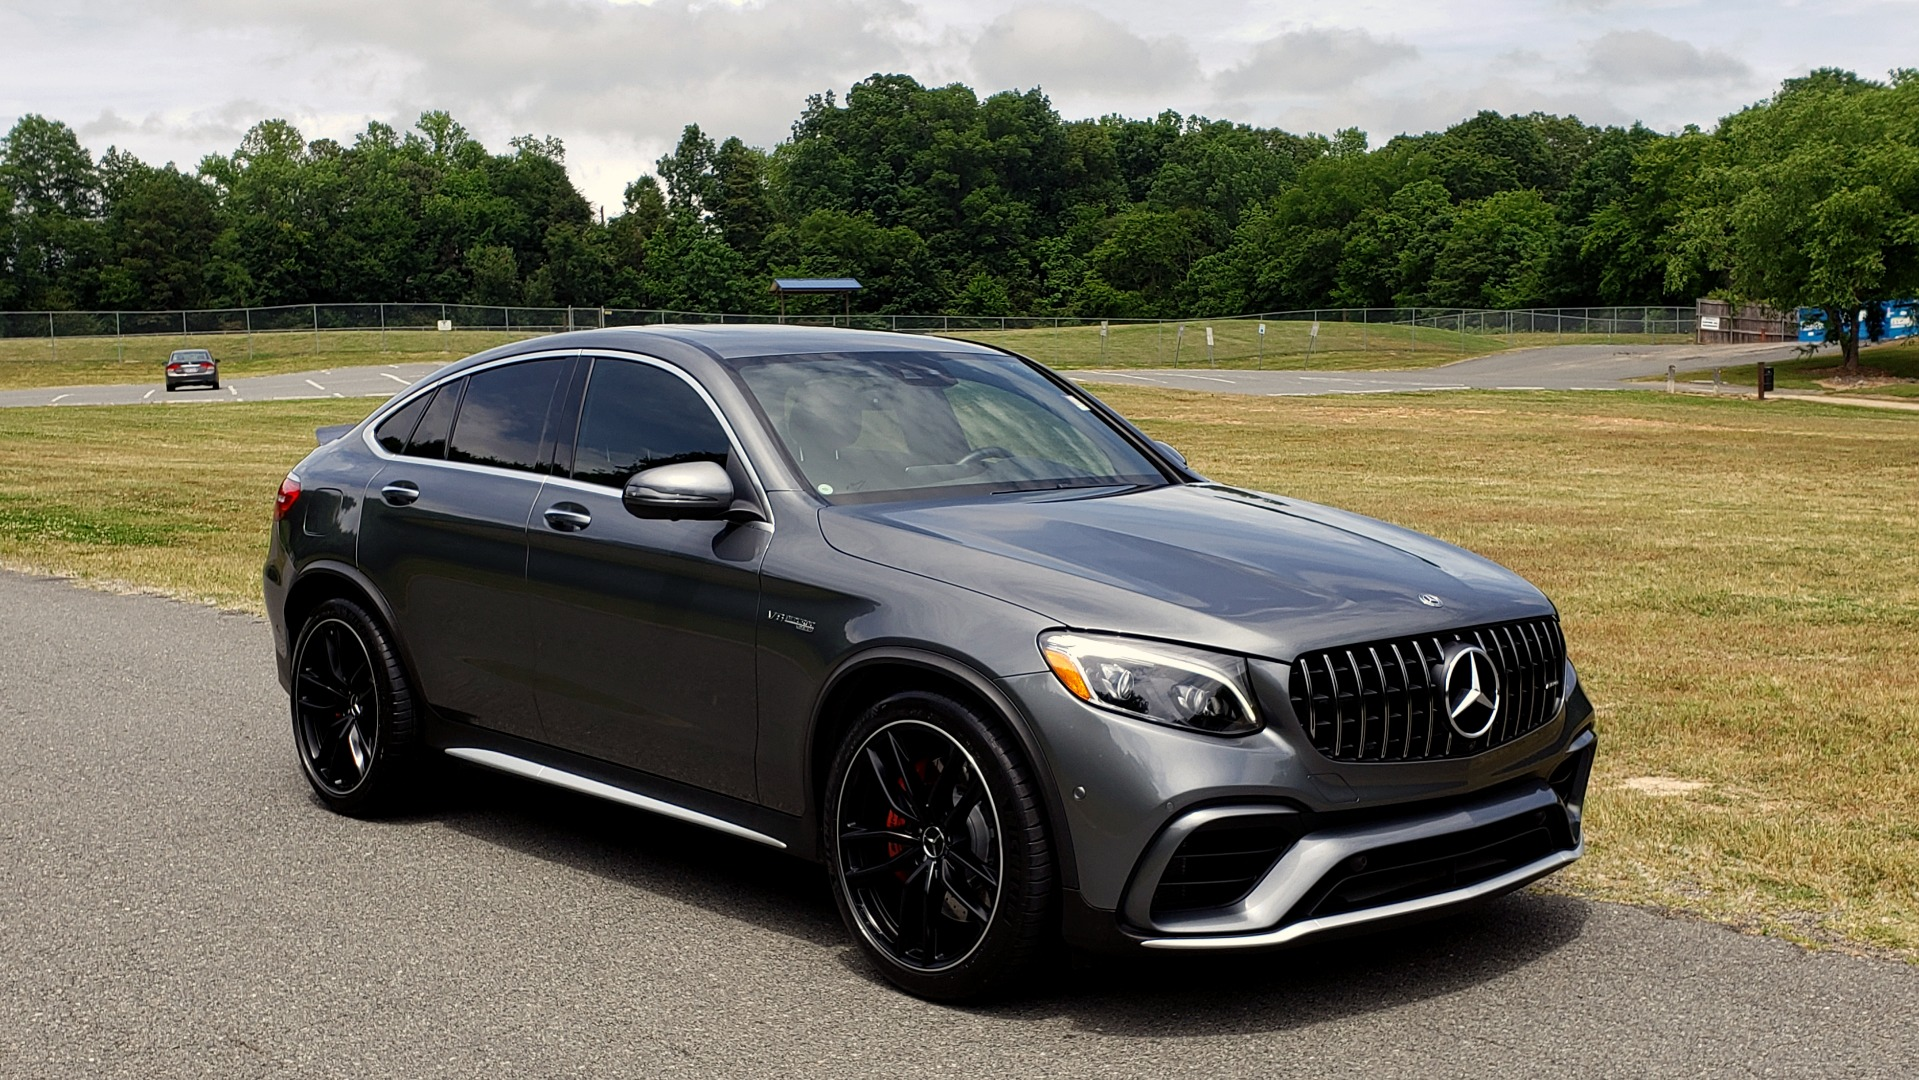 Used 2019 Mercedes-Benz GLC AMG 63 S 4MATIC COUPE / NAV / TRACK PACE APP / AMG PERF EXH / MULTIMEDIA for sale Sold at Formula Imports in Charlotte NC 28227 14